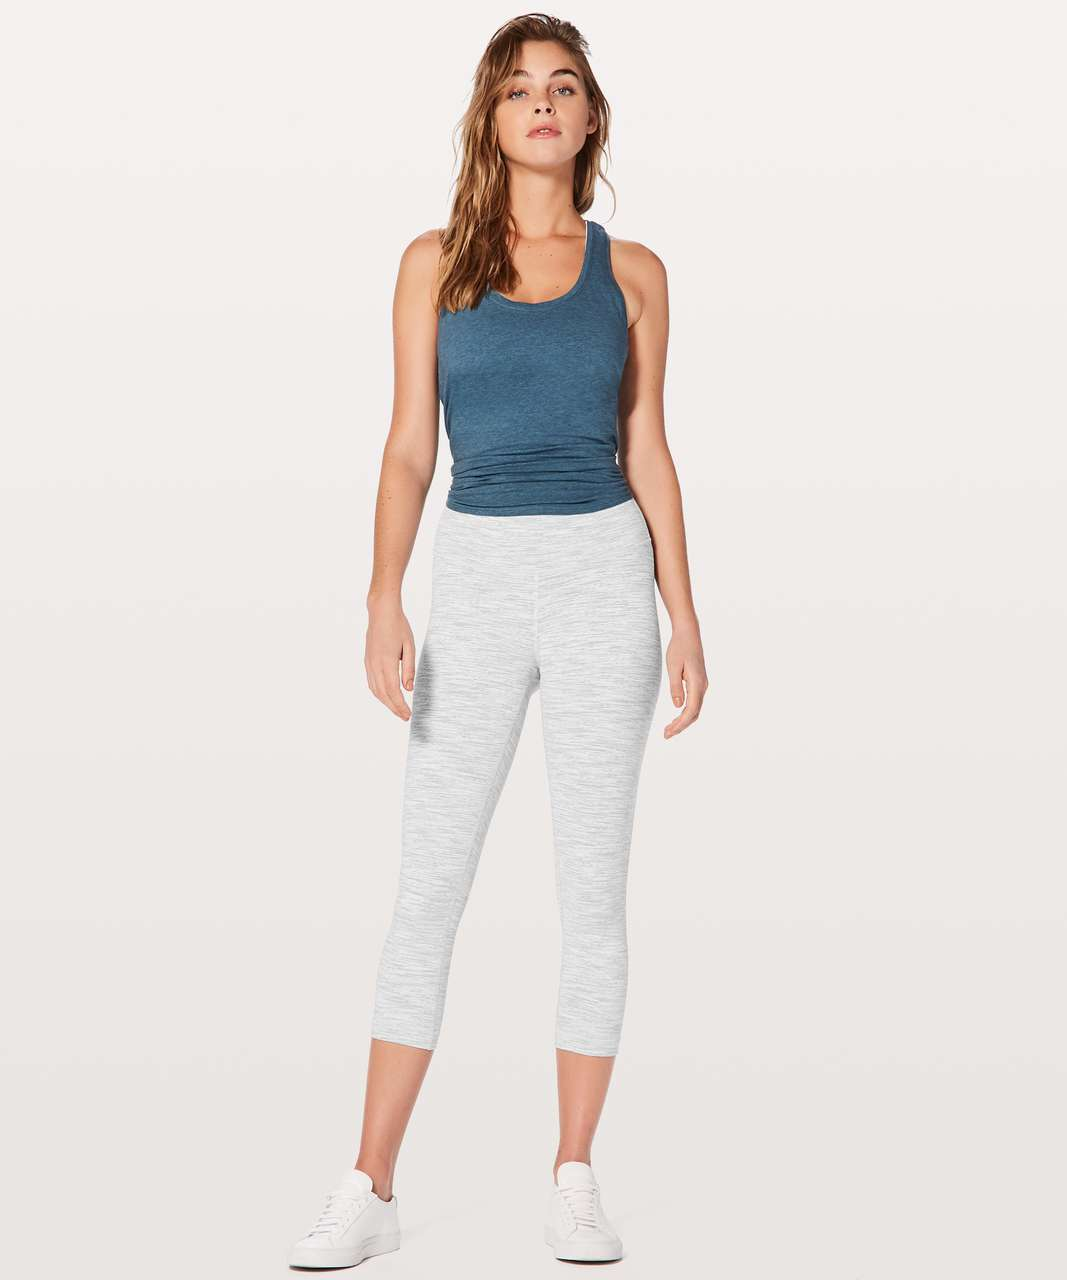 "Lululemon Wunder Under Crop (Hi-Rise) *21"" - Wee Are From Space Nimbus Battleship"